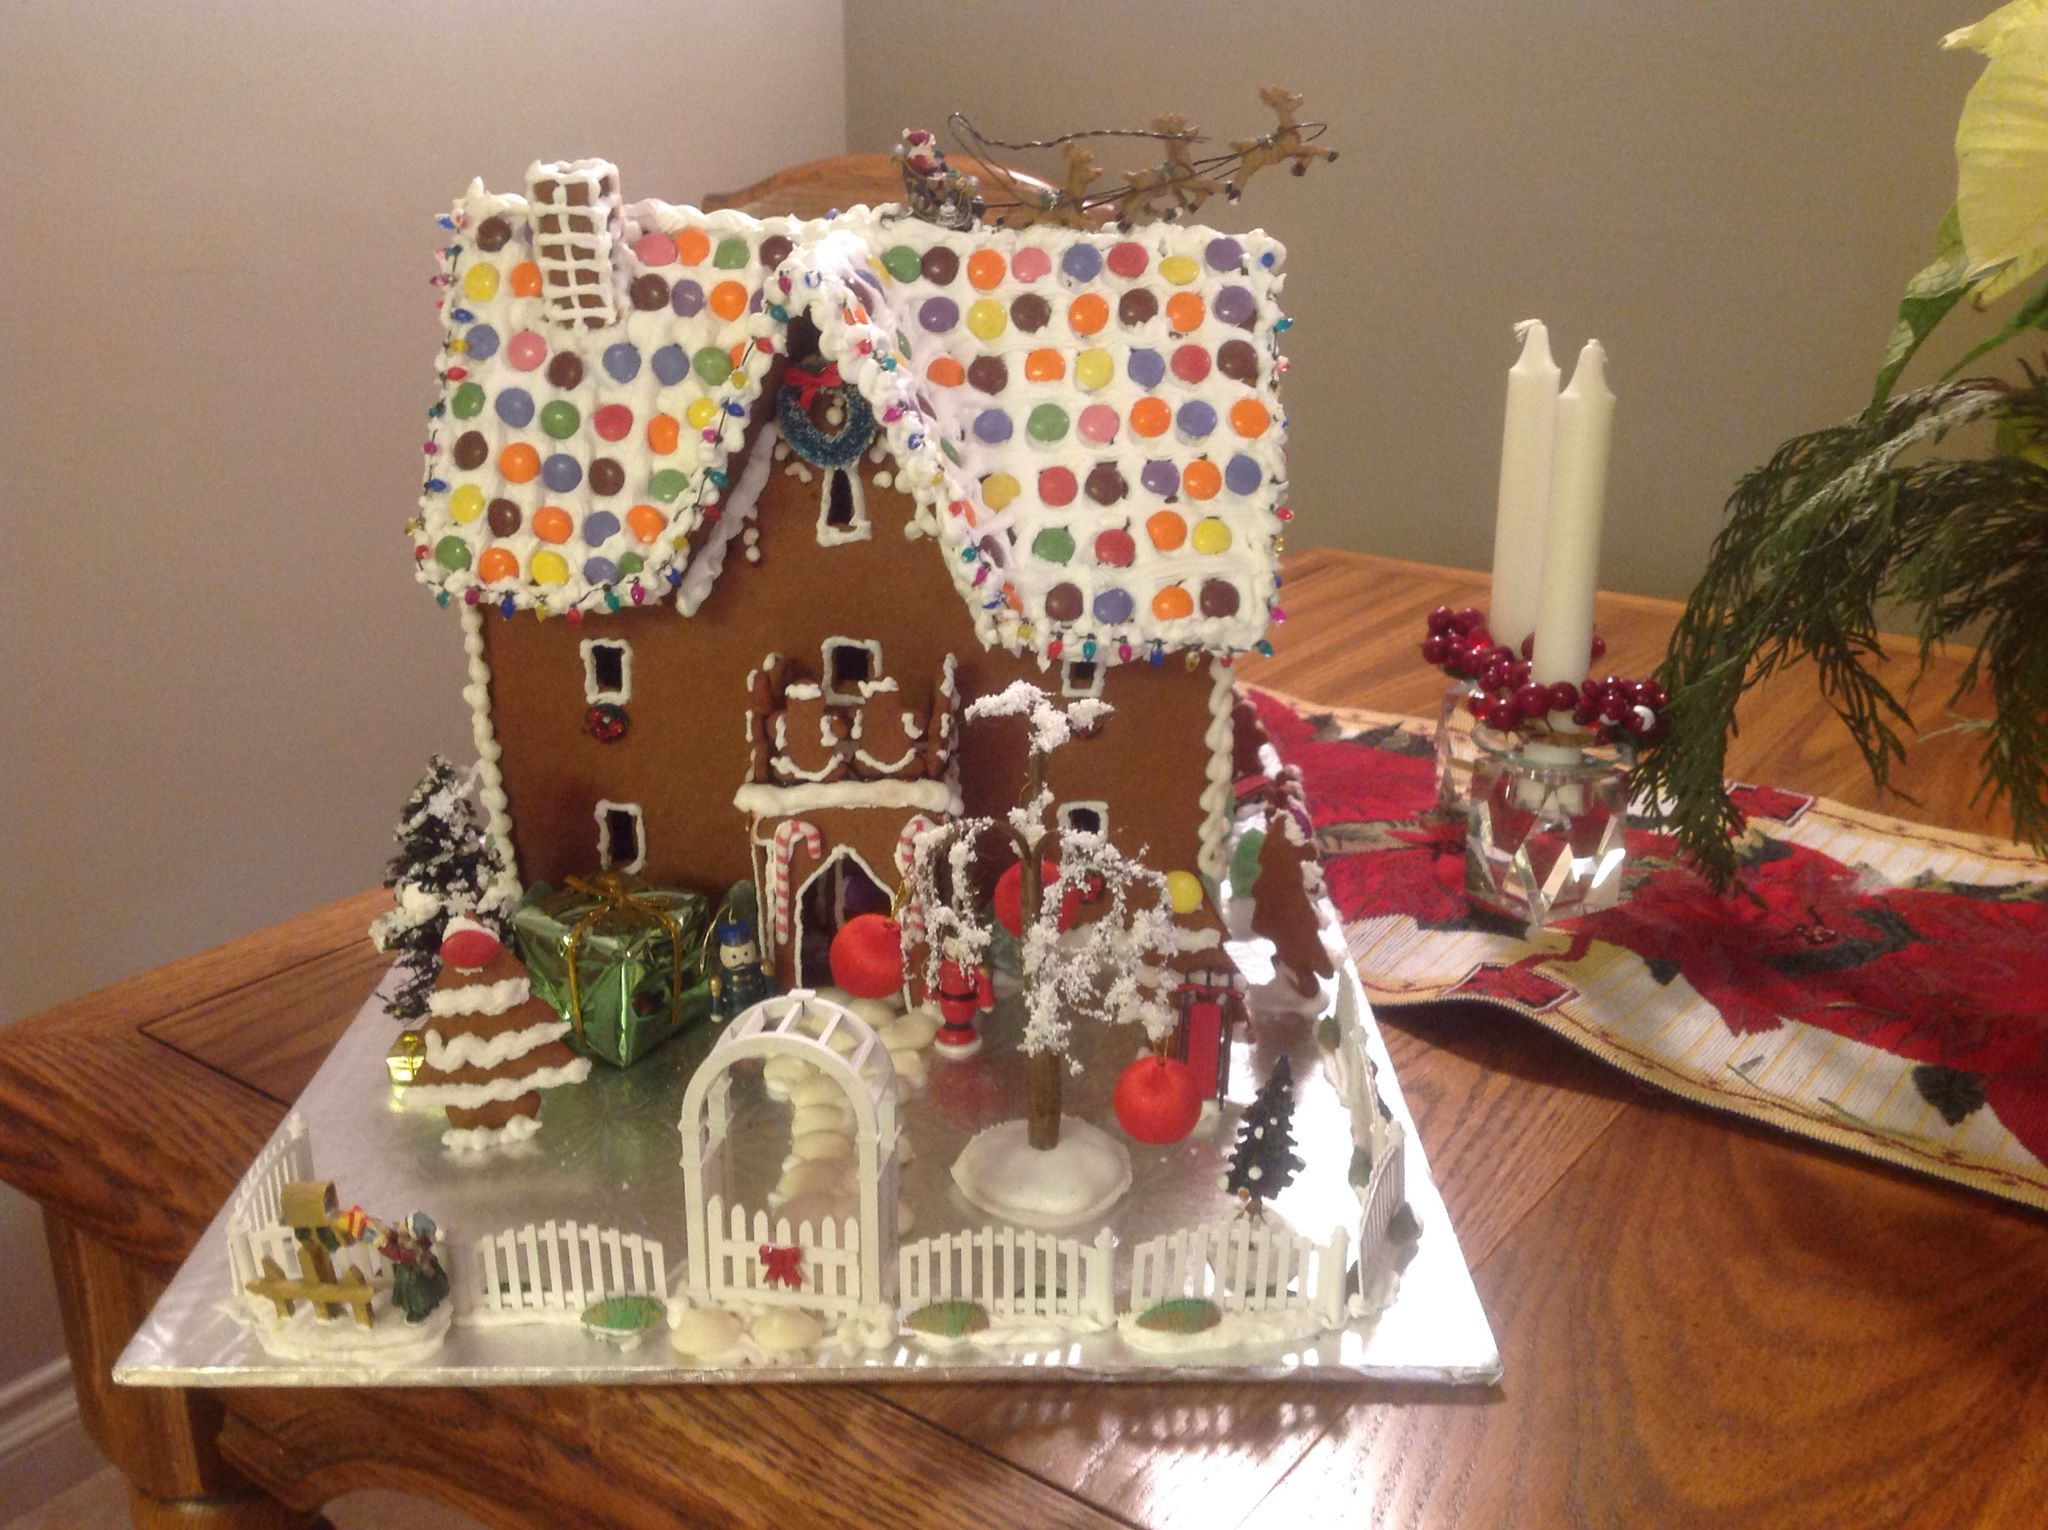 A 3 story gingerbread house Gingerbread house